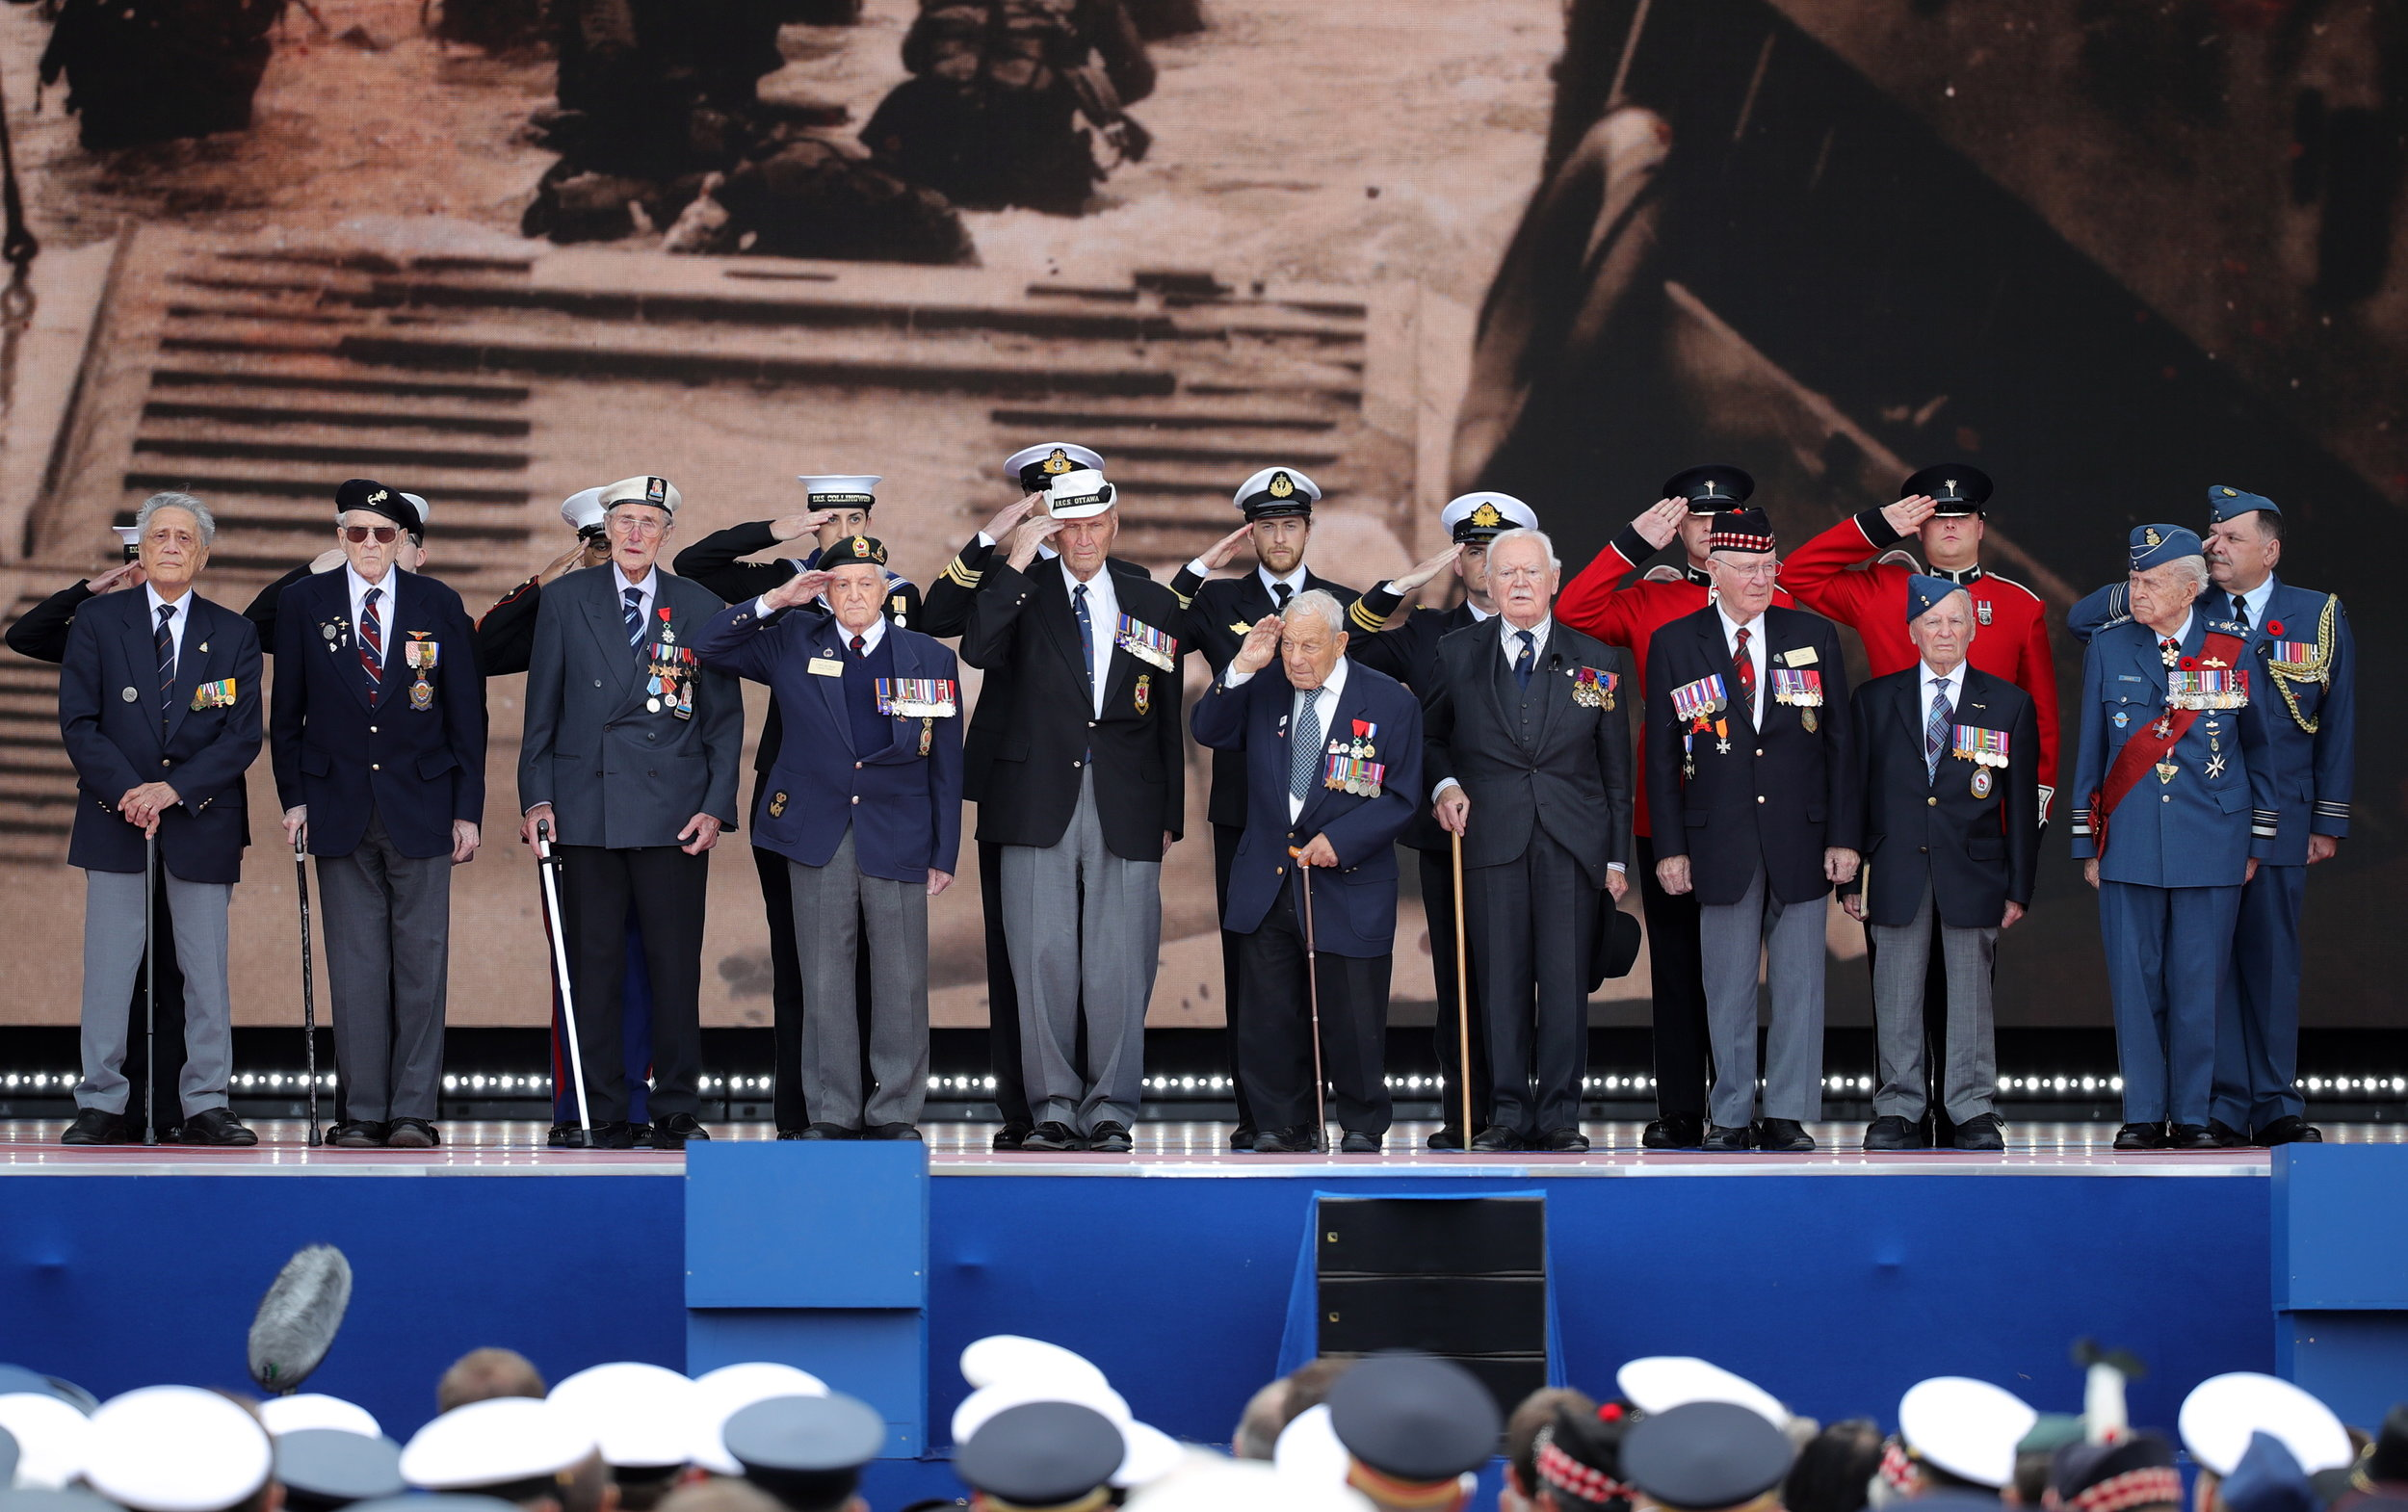 Portsmouth D-Day Commemorations in Pictures4.jpg